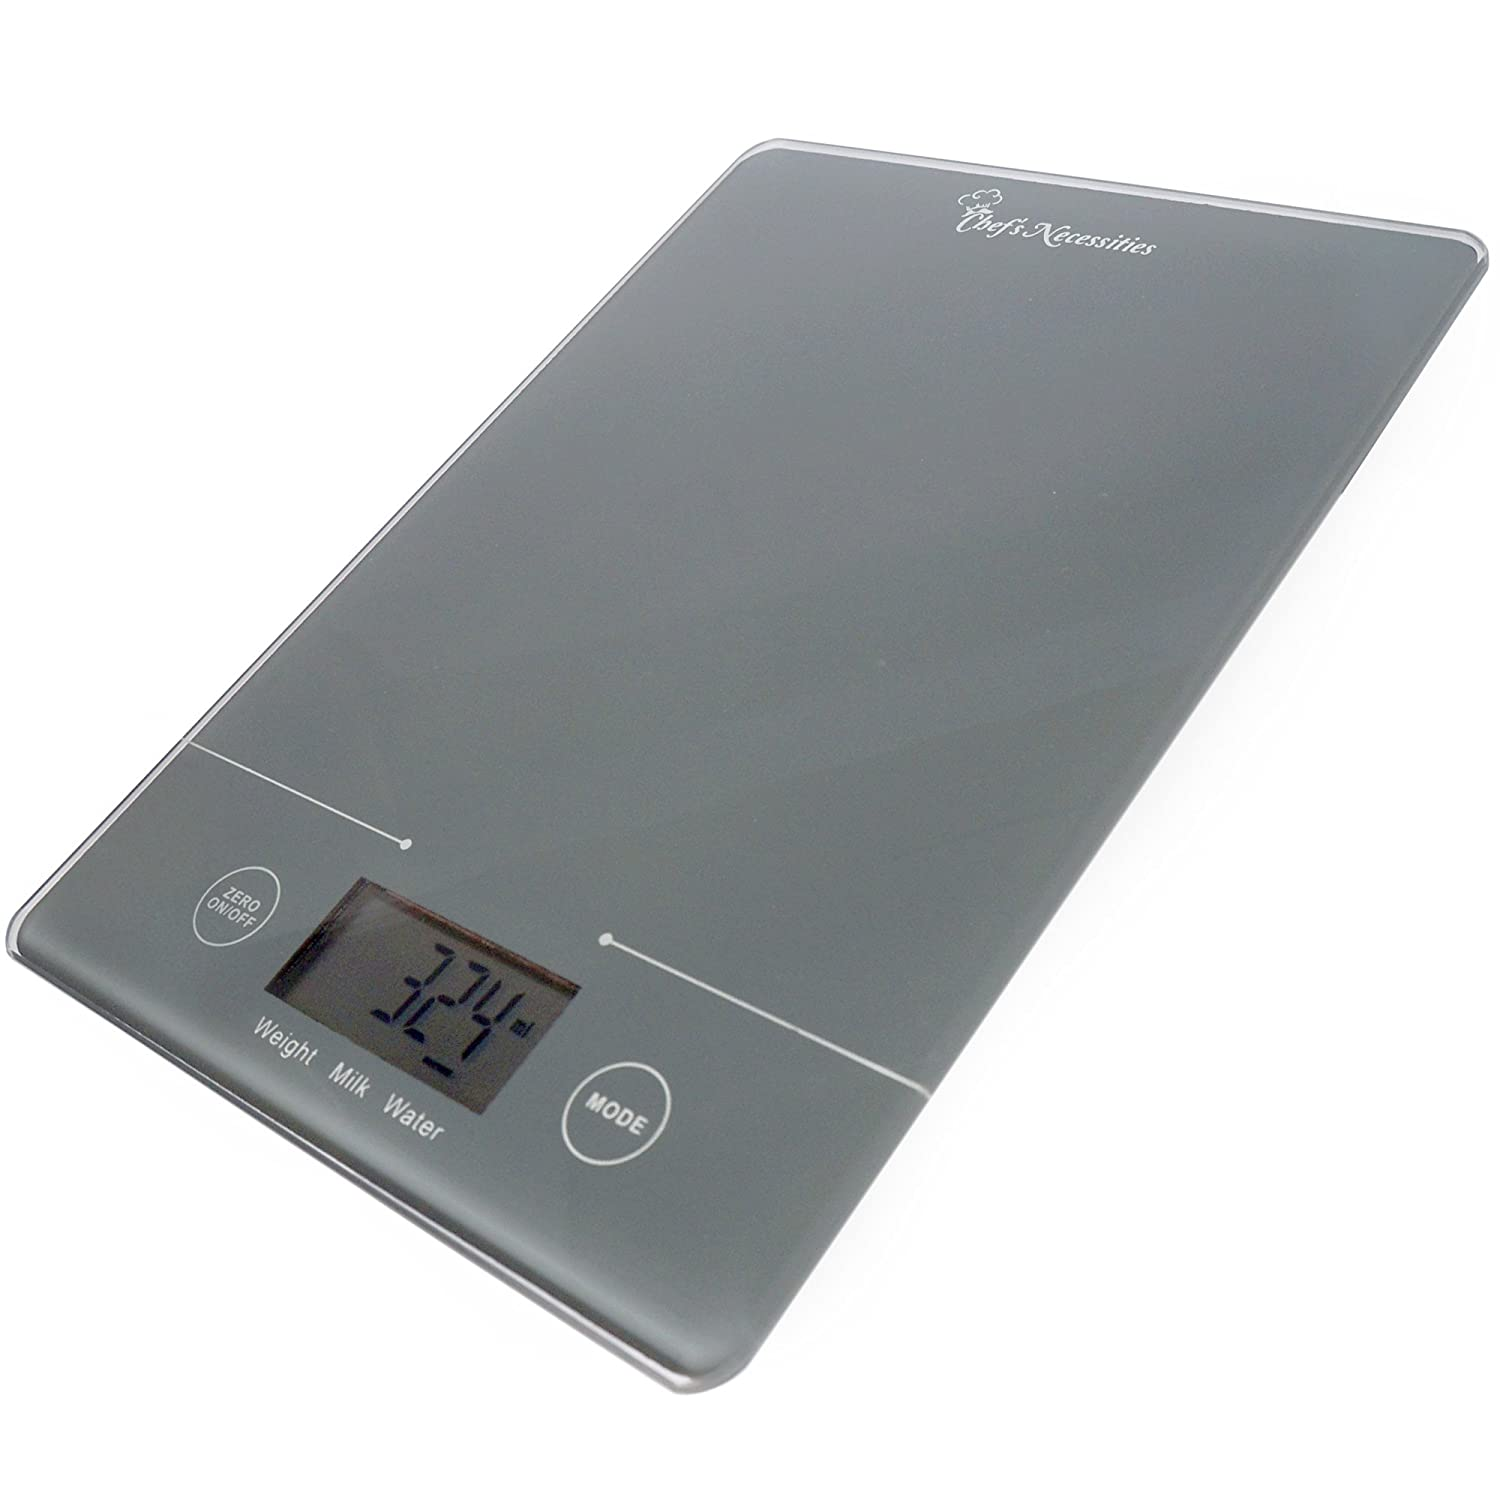 necessities slim digital kitchen food scale best digital scales